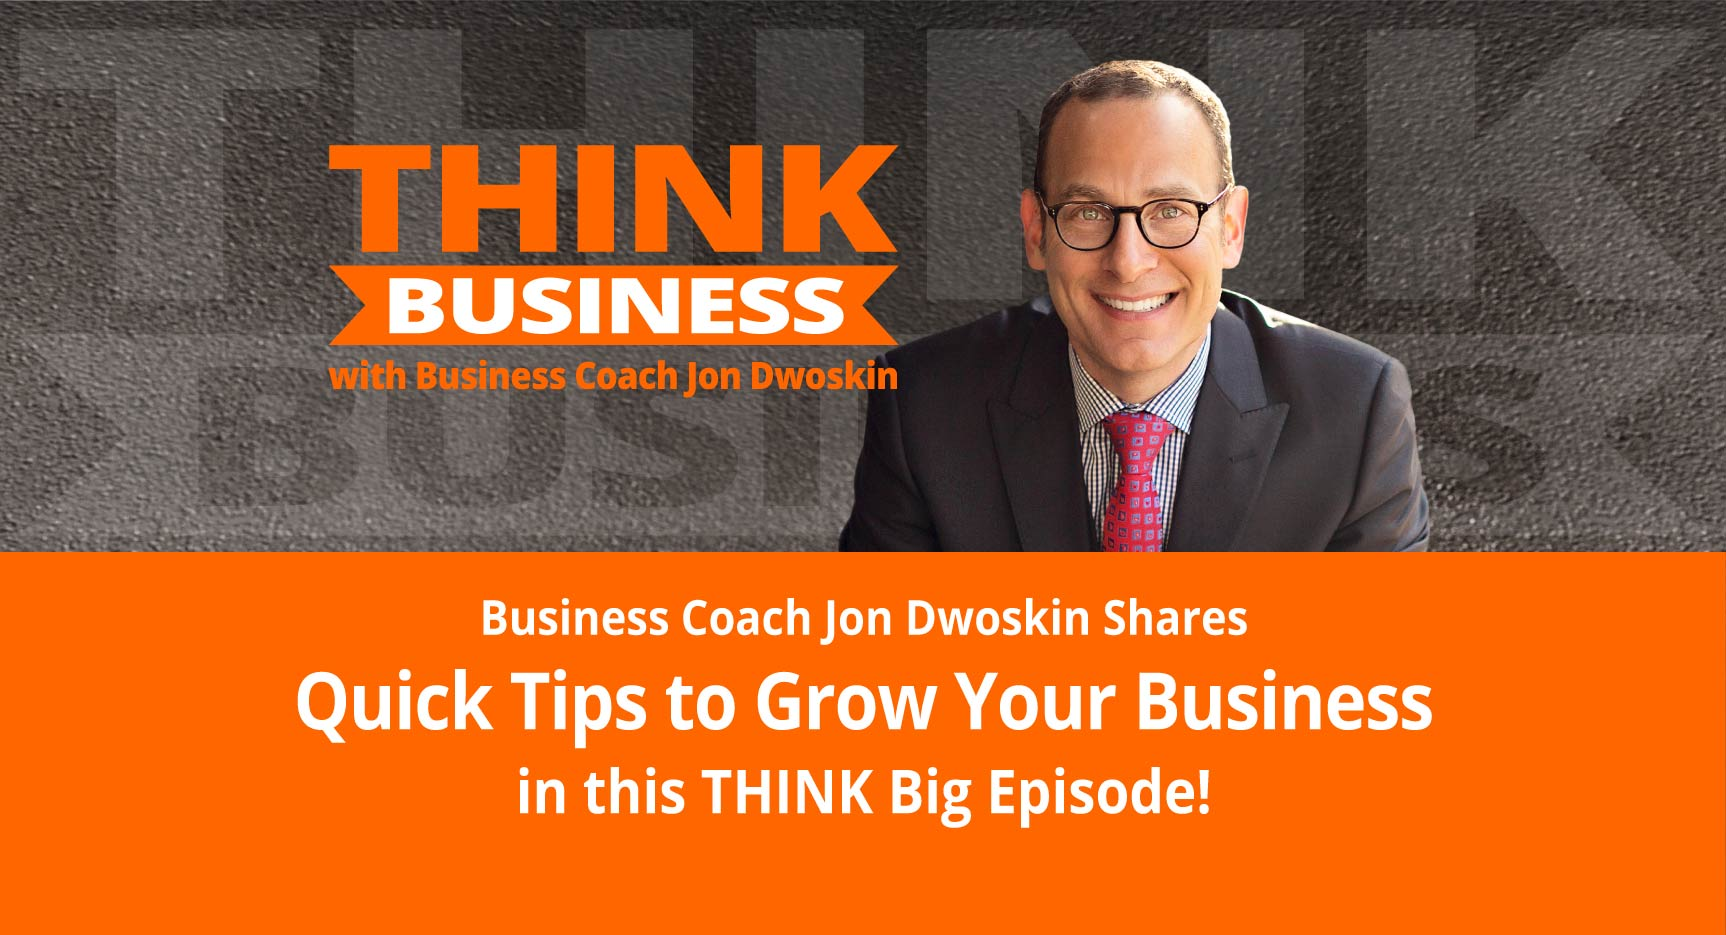 THINK Business Podcast: Share Your Backstory